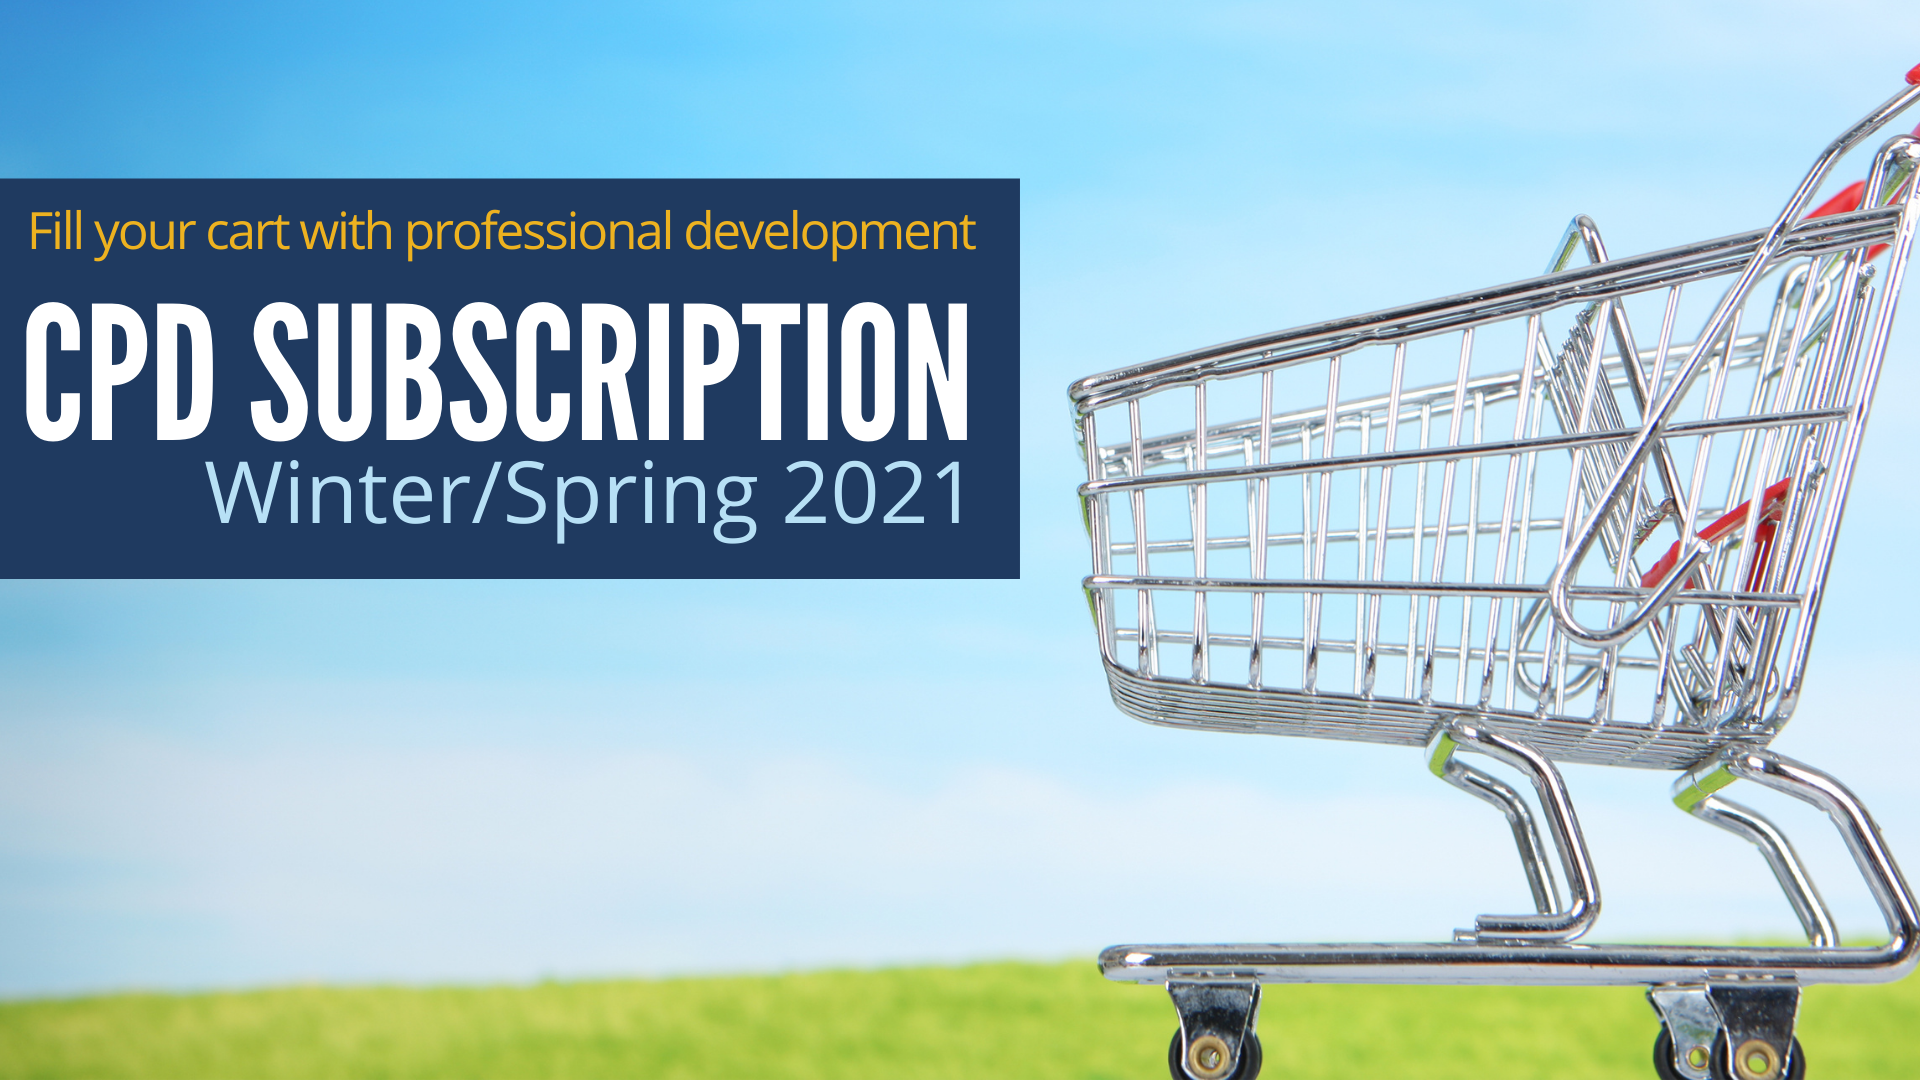 Winter/Spring 2021 CPD Subscription